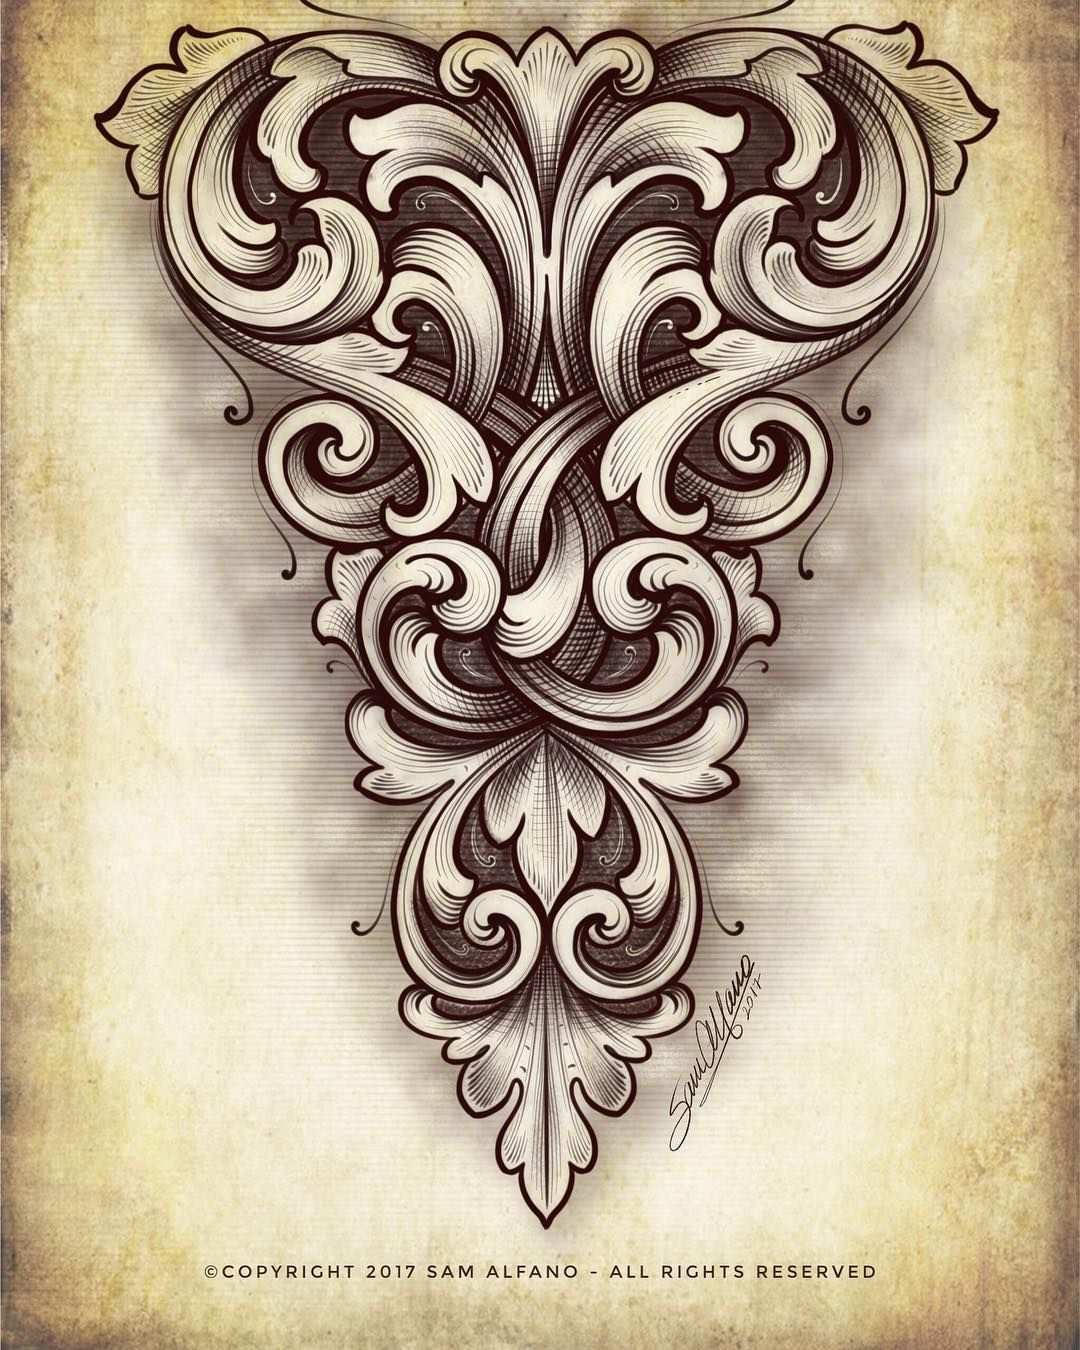 1 502 Likes 15 Comments Sam Alfano Master Engraver On Instagram Intertwined Scrolls Thanks For Follo Filigree Tattoo Wood Tattoo Carving Designs